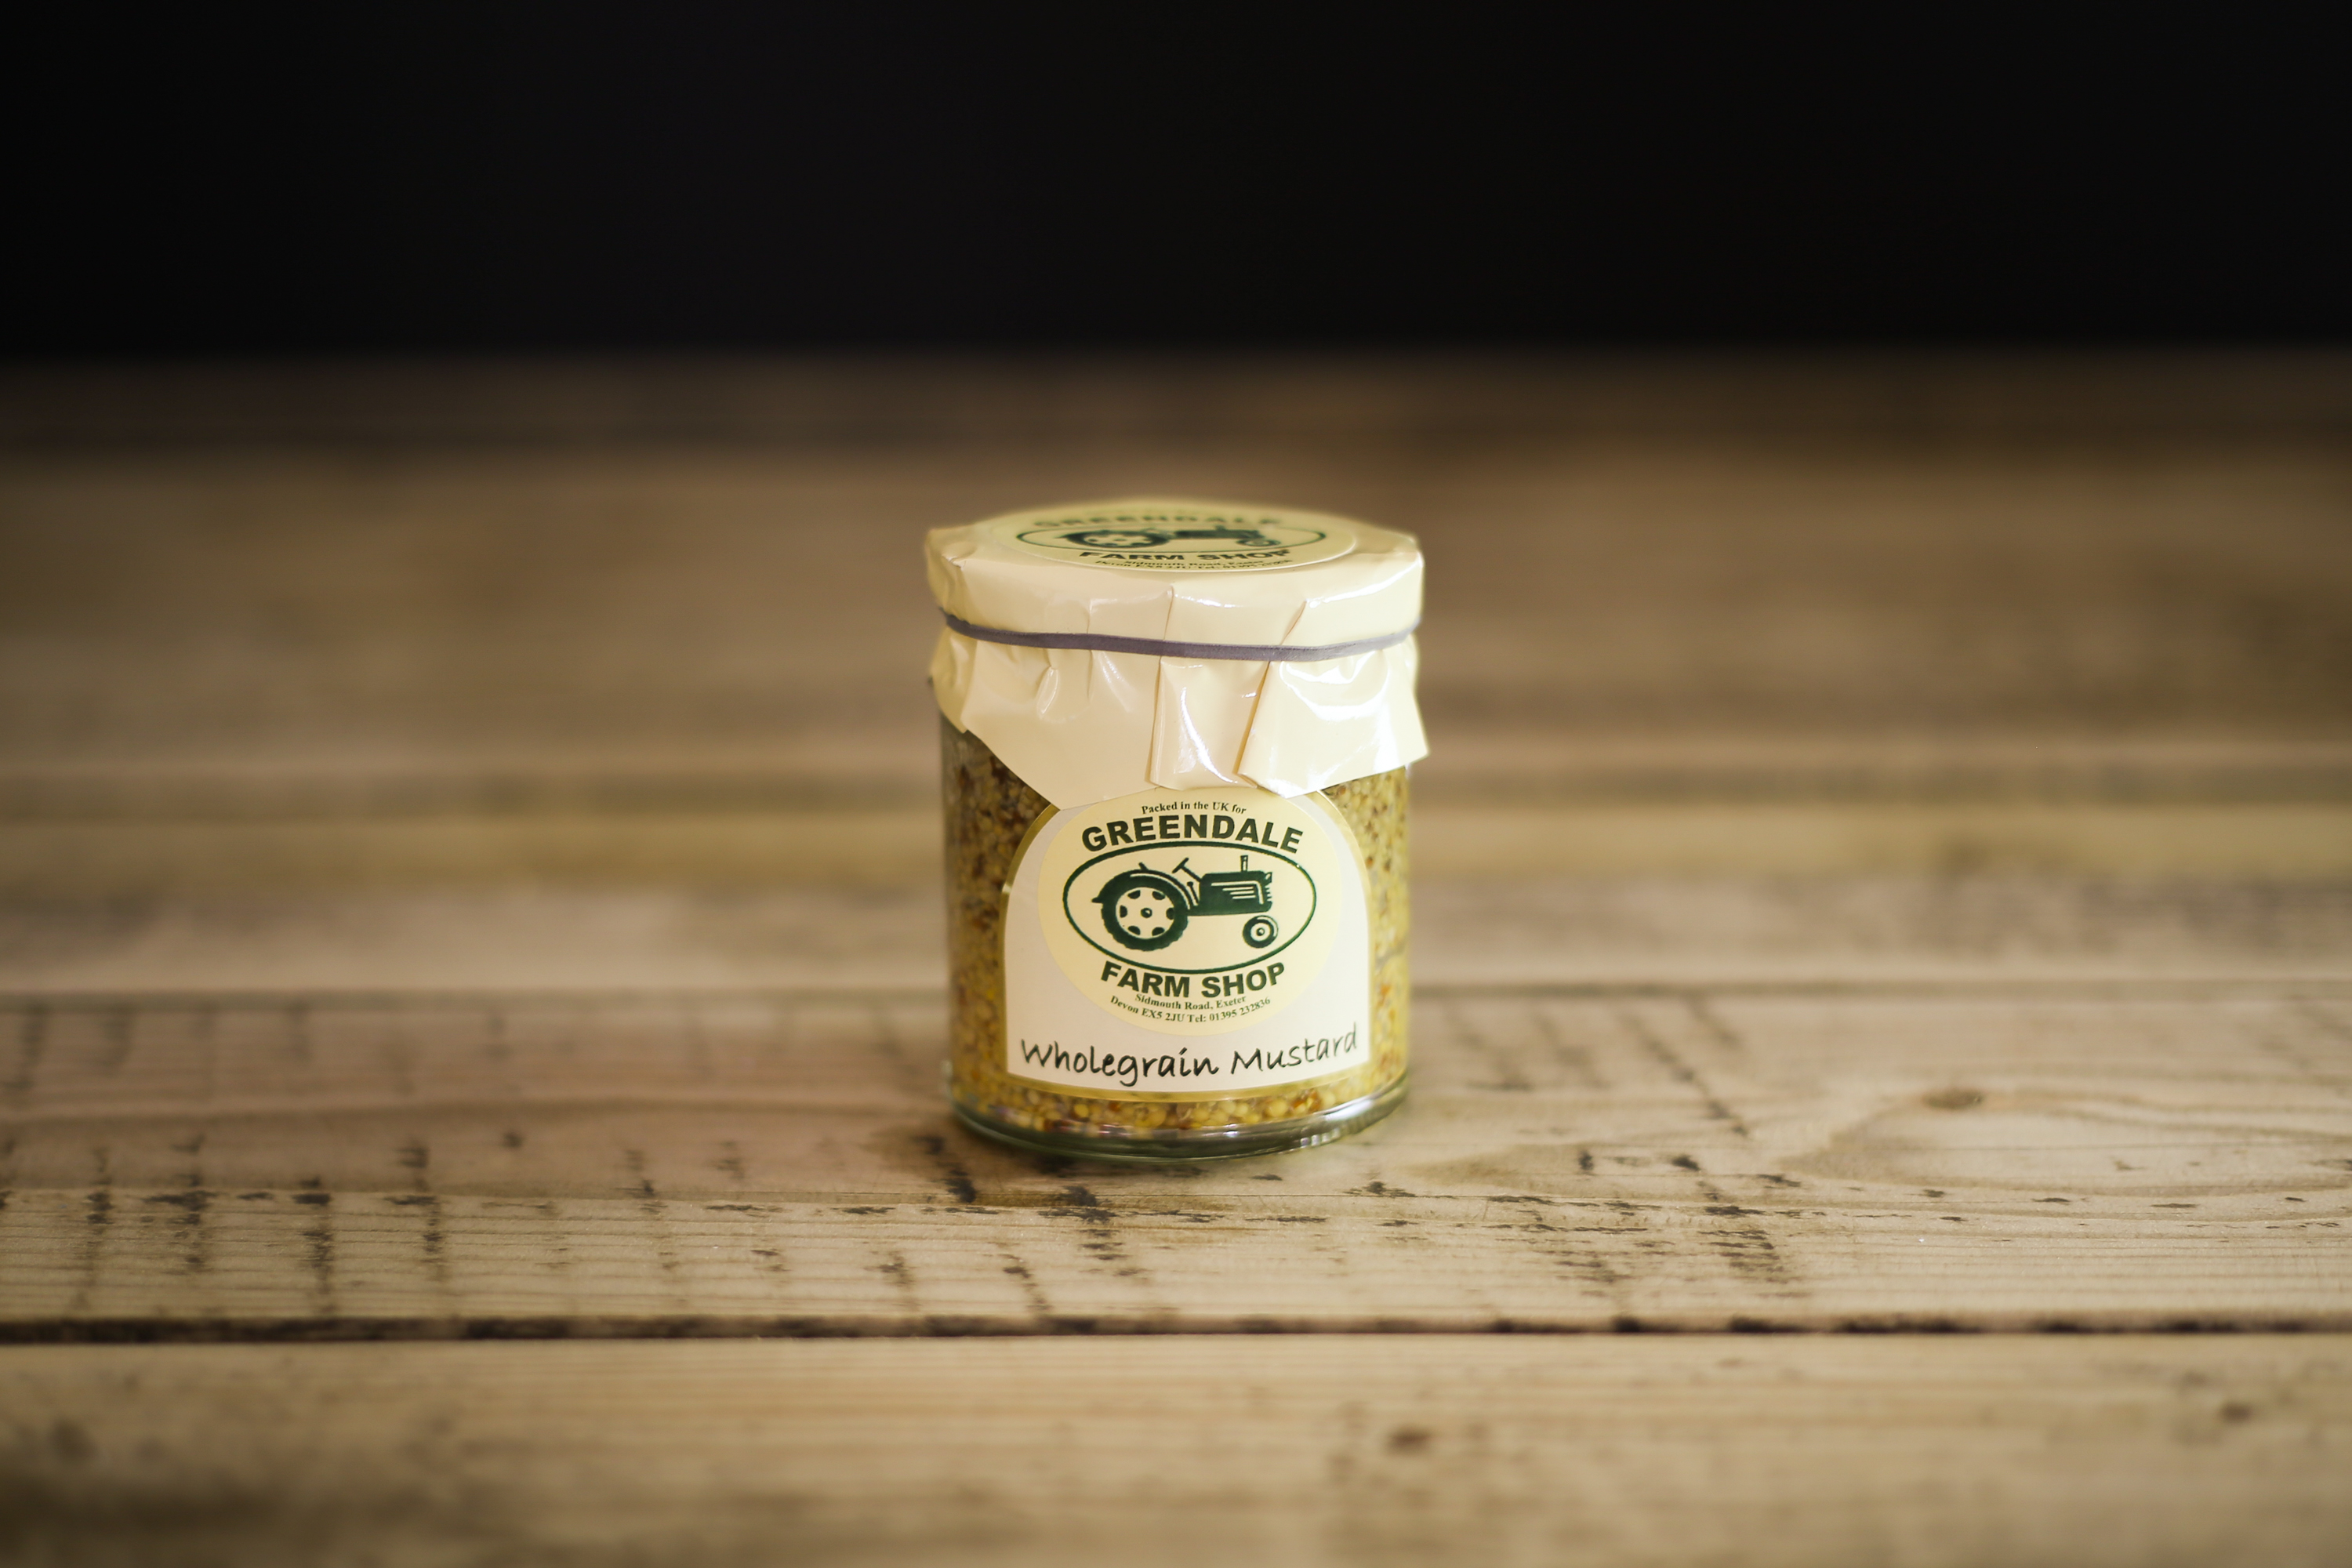 Greendale Wholegrain Mustard